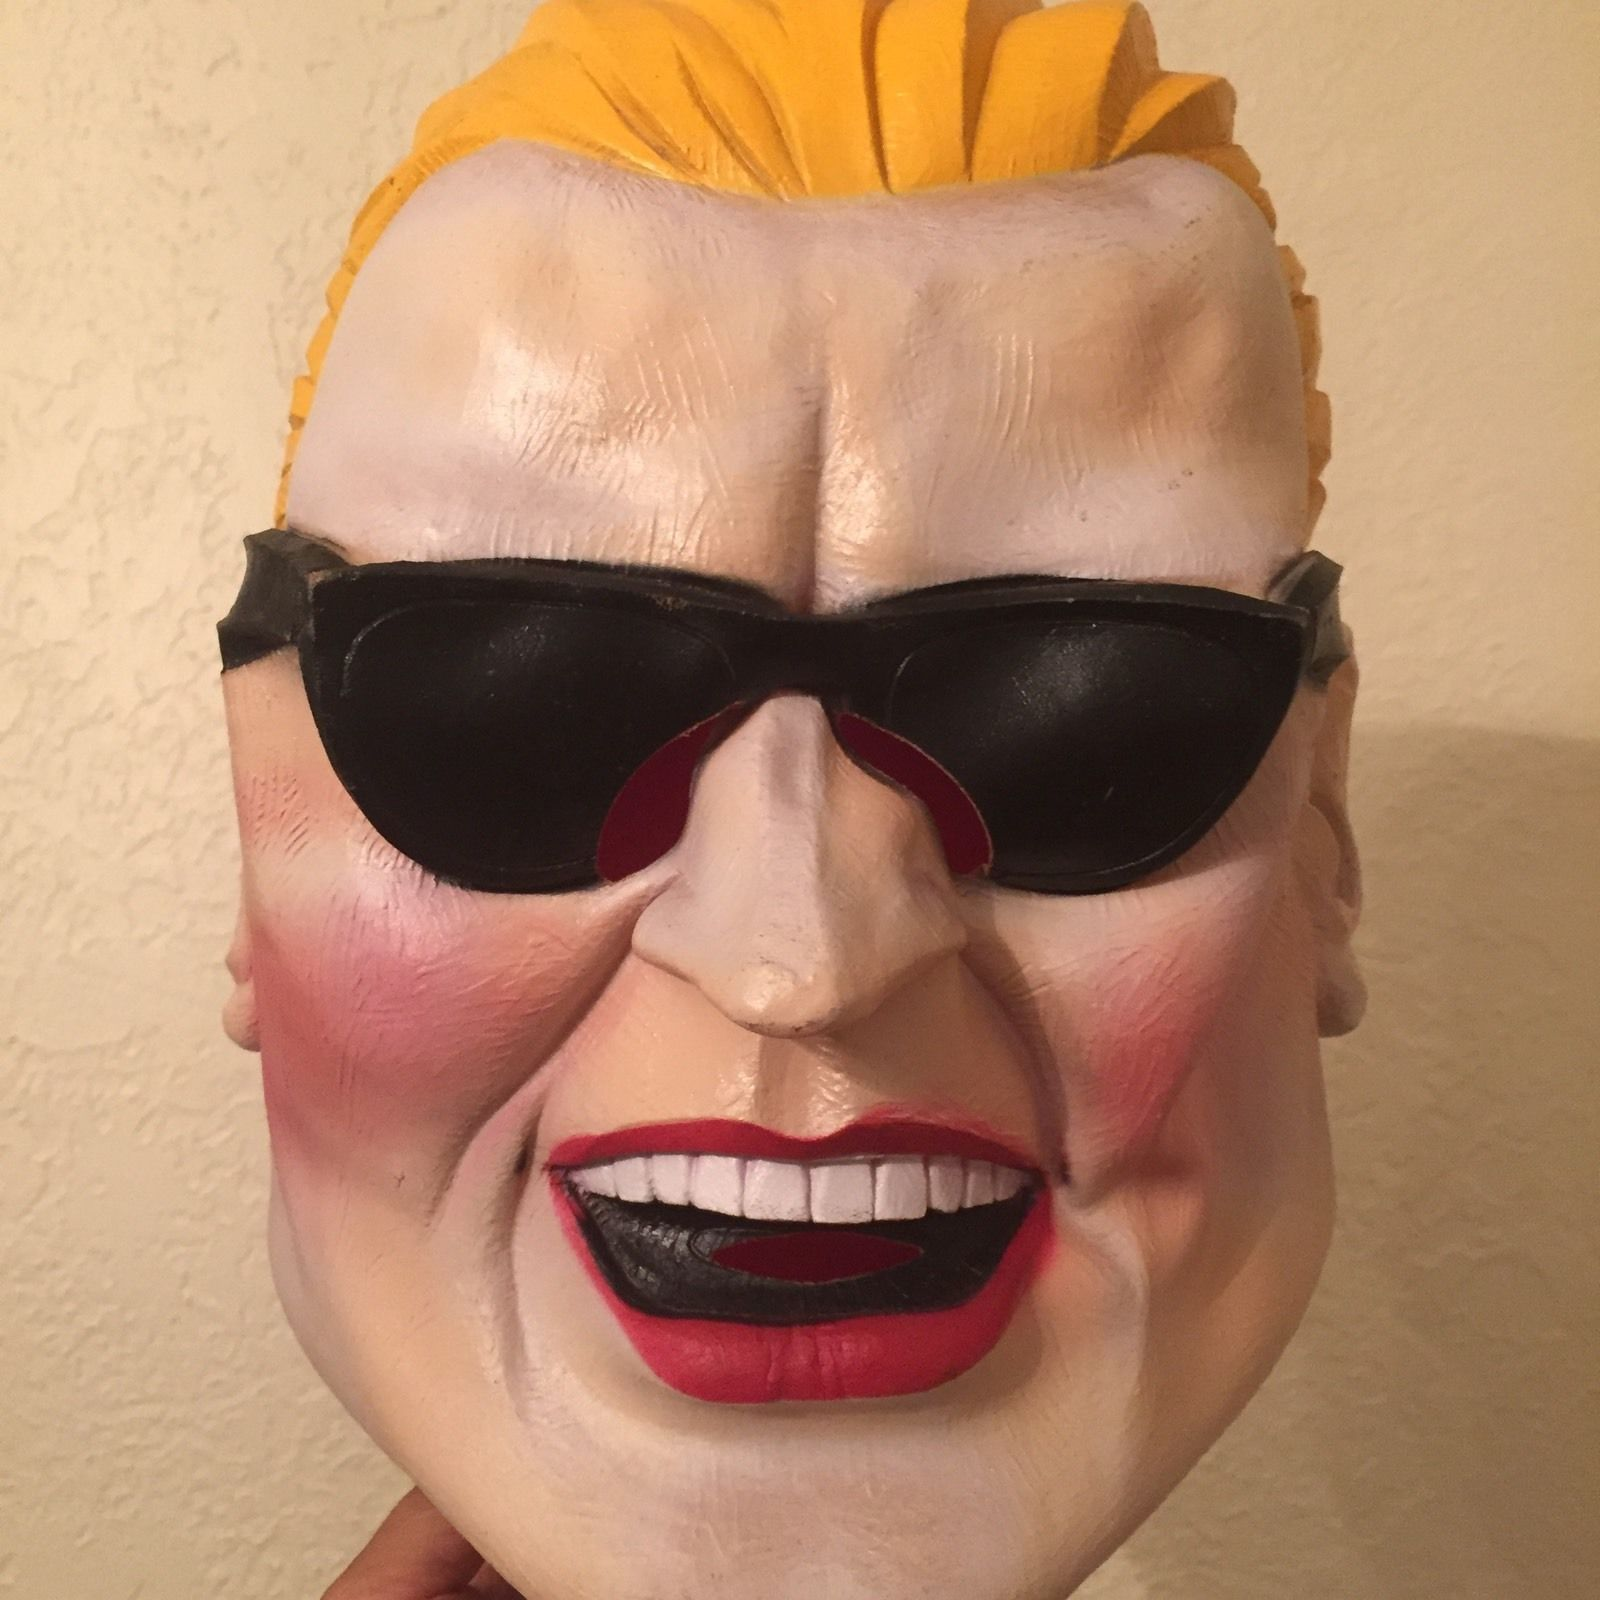 Vintage 1980's Max Headroom Rubber Halloween Mask Hard to Find ...